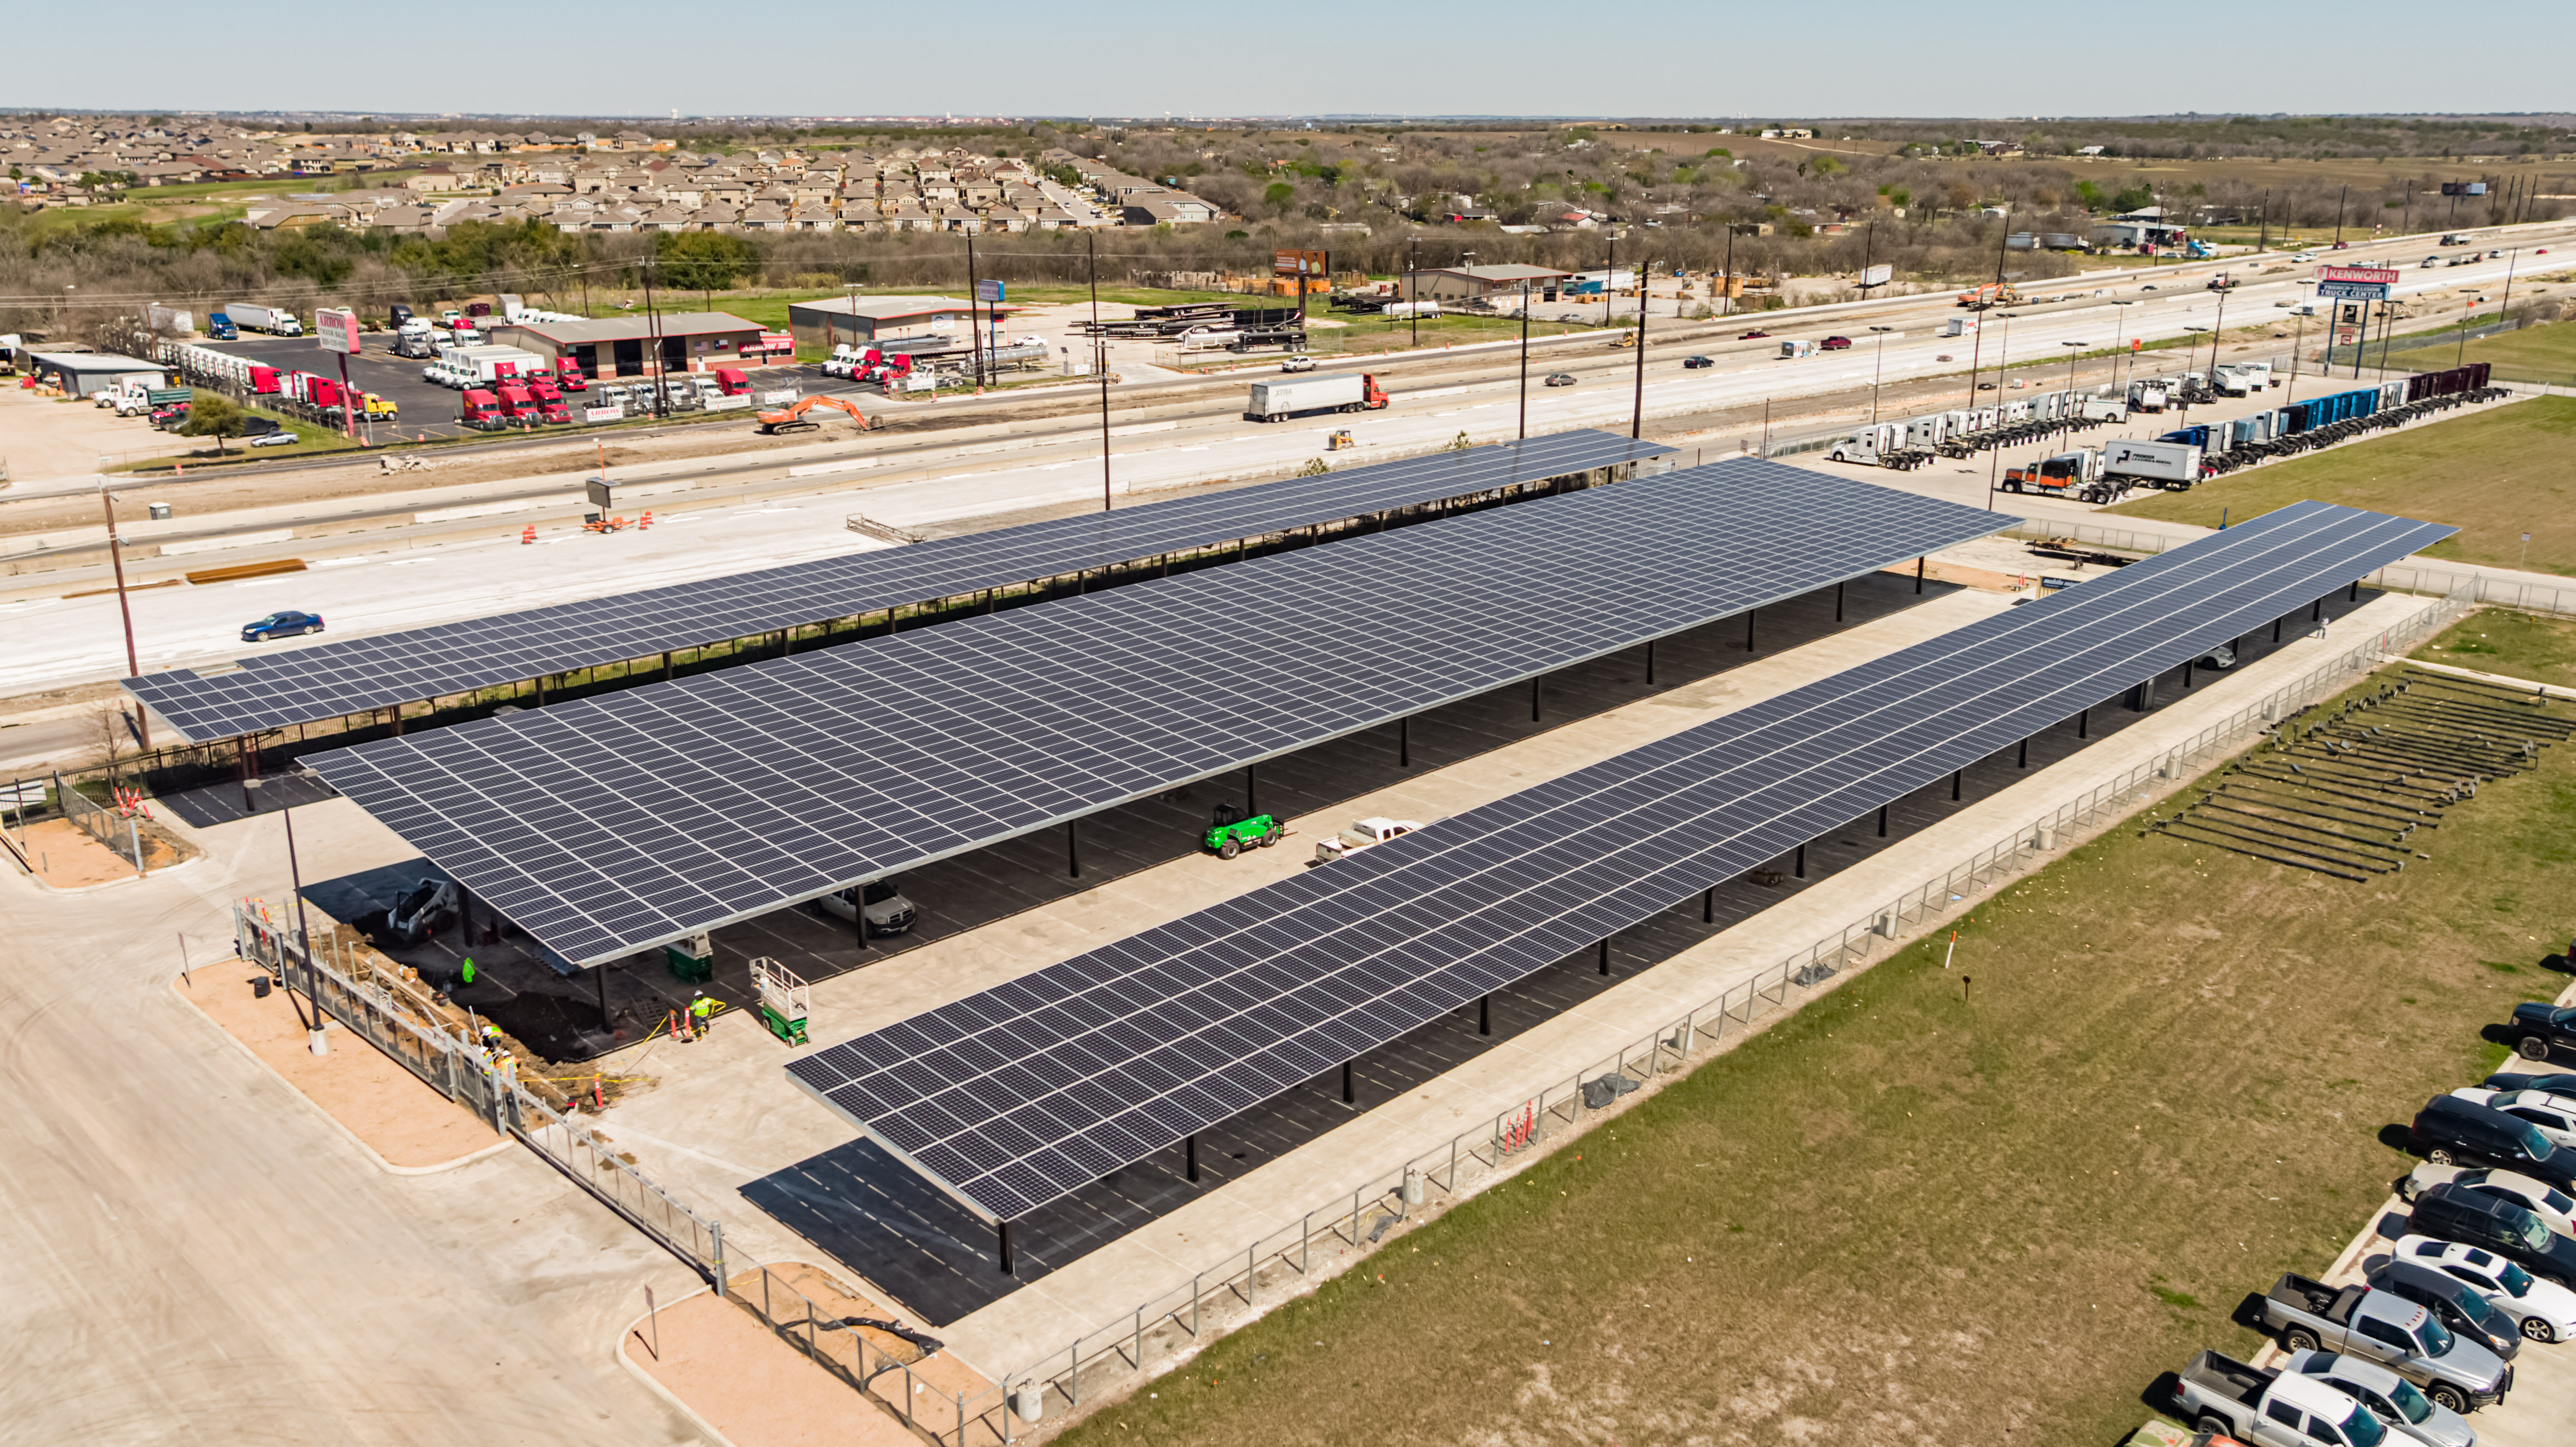 CPS Energy's next big initiative: solar-powered parking spots